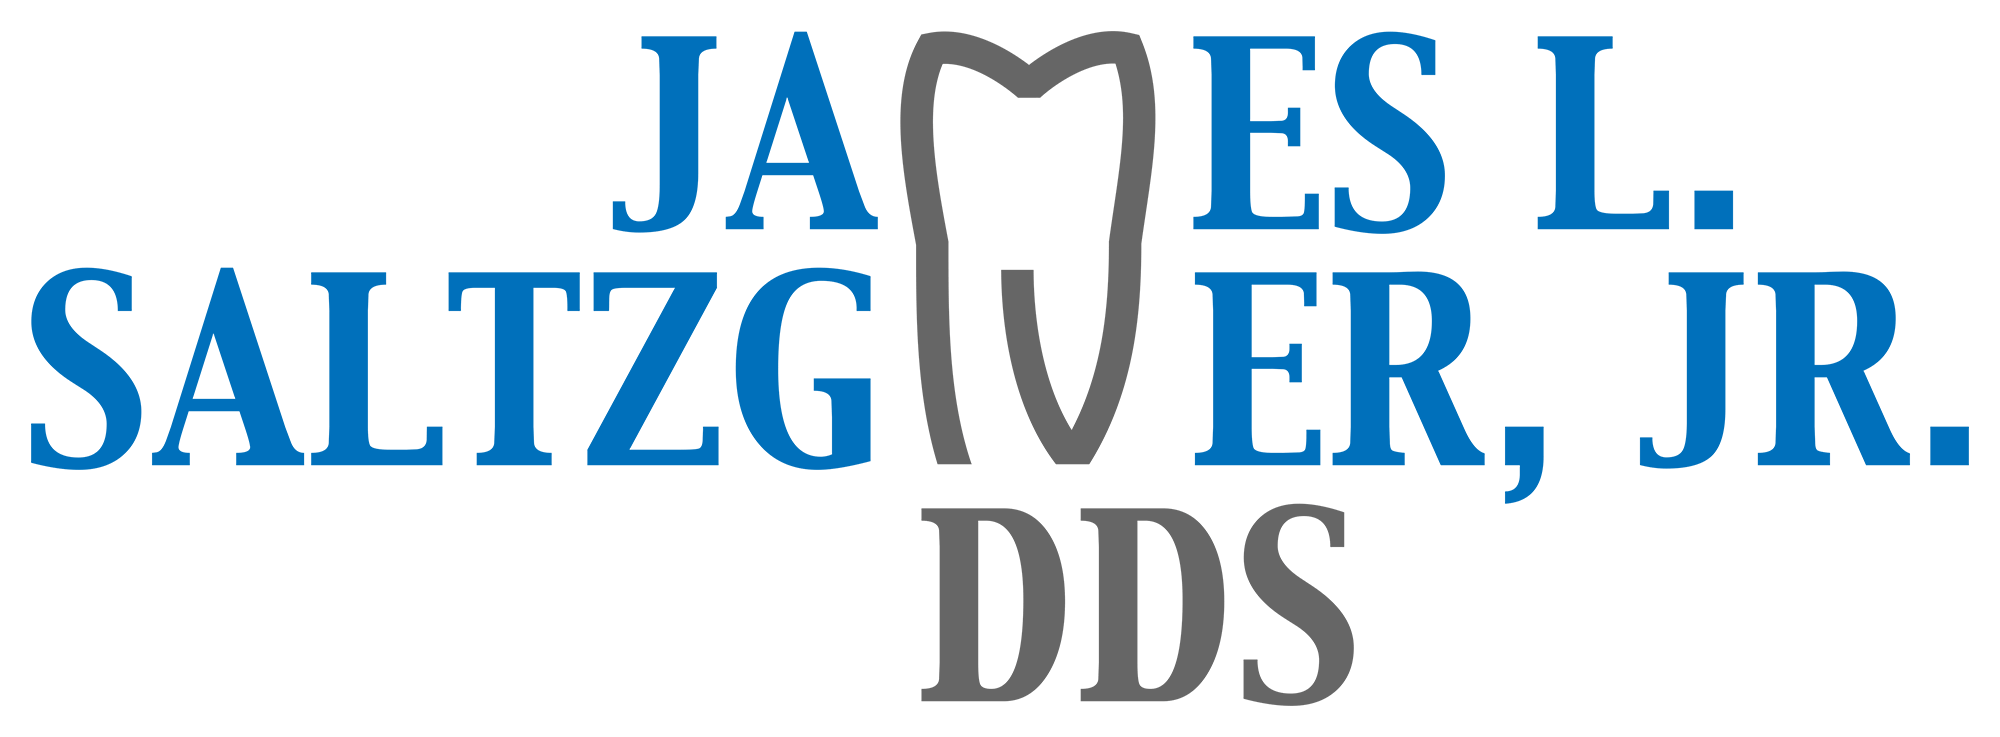 James L. Saltzgiver, Jr. DDS Logo